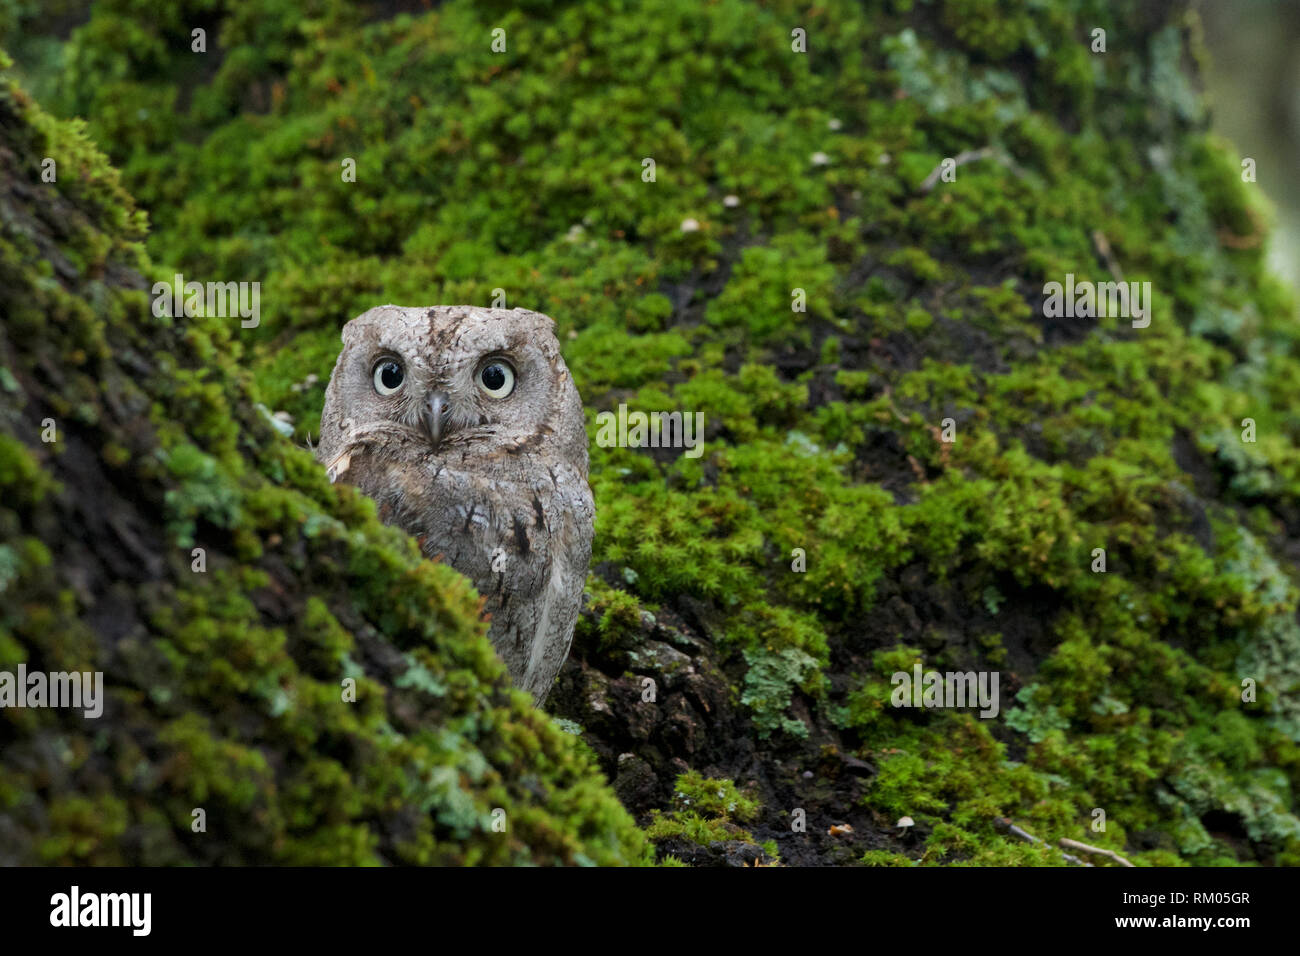 Autillo, Europeo, Otus scops, Strigiformes, Scops Owl, European, Eurasian, Scops, Owl, - Stock Image